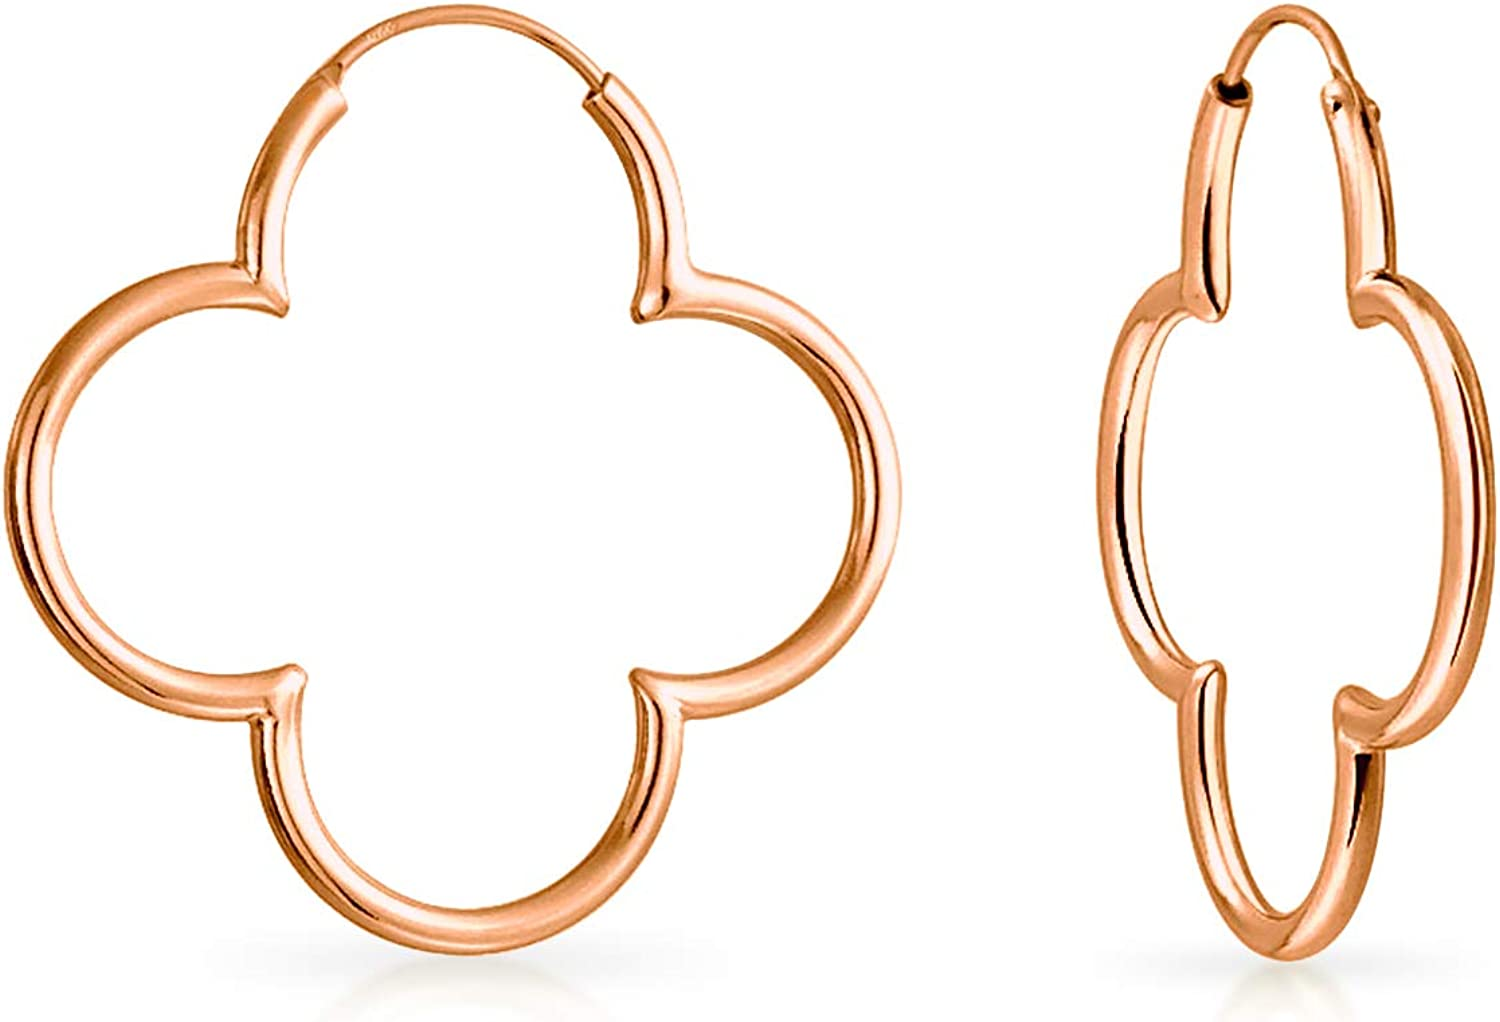 Simple Flower Shaped Thin Tube Endless Clover Hoop Earrings For Women For Teen Rose 14K Gold Plated 925 Sterling Silver